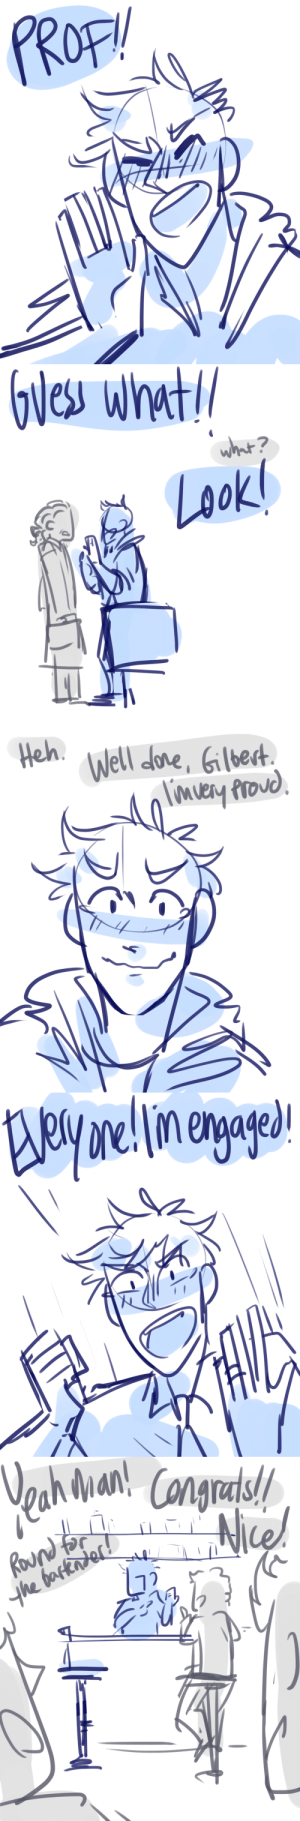 Target, Tumblr, and Blog: Heh  Well Jone, Gled ask-art-student-prussia:  Gil yells at the whole bar about his cool new ring